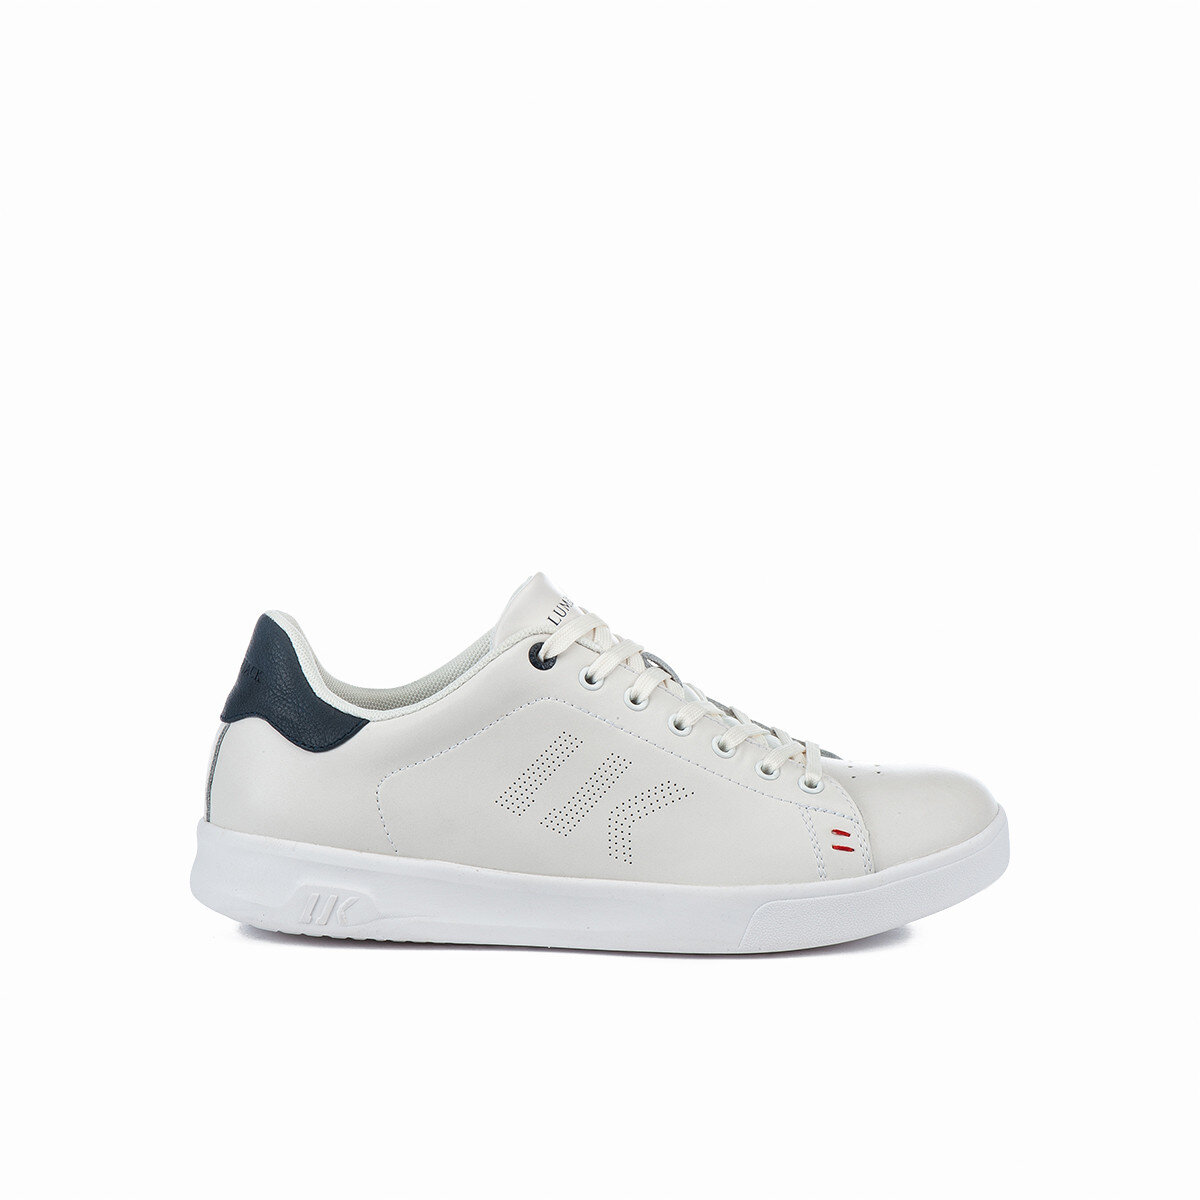 HAWK Sneakers Uomo